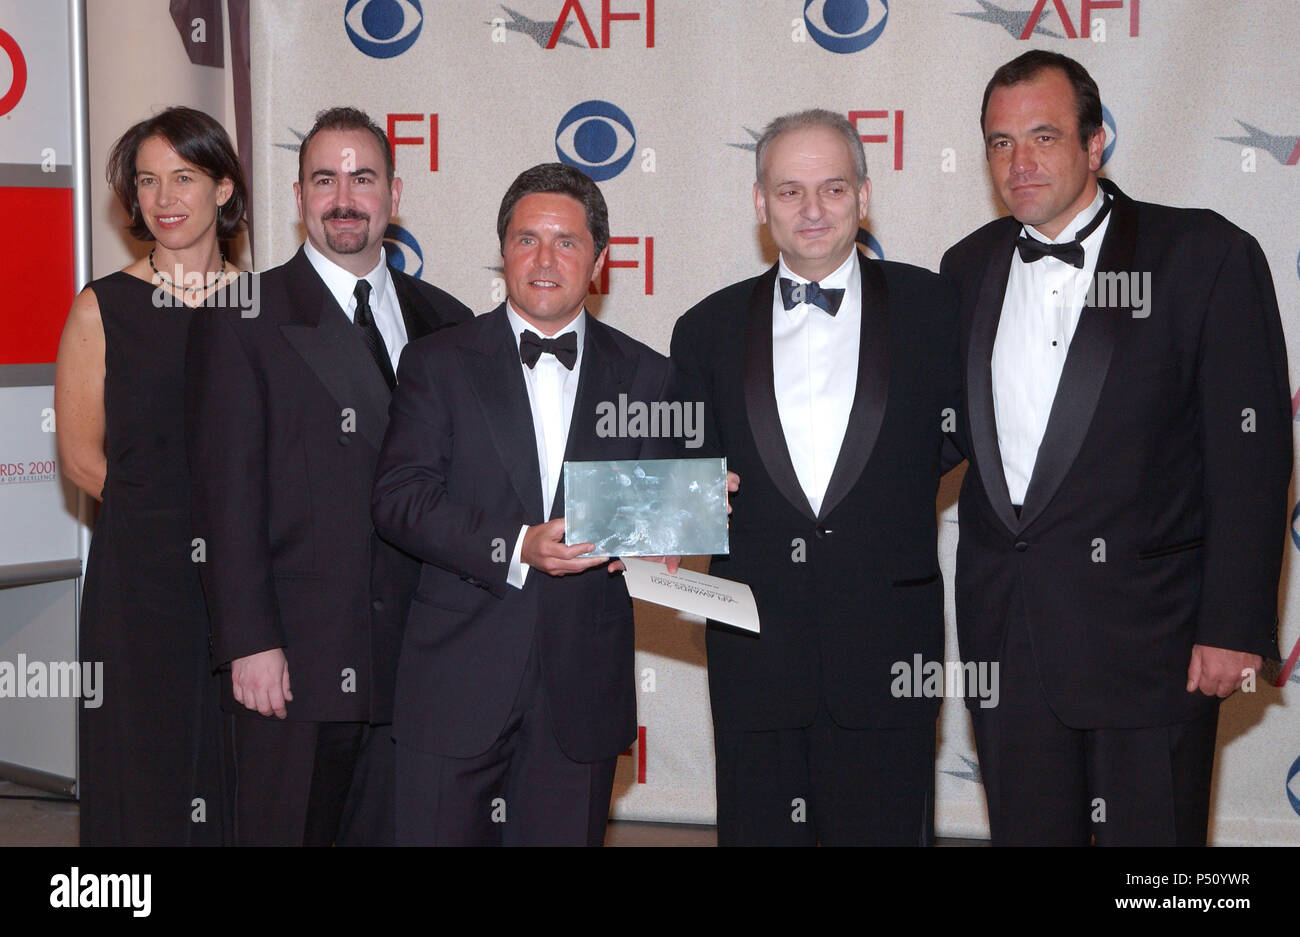 Afi Awards 2001 High Resolution Stock Photography And Images Alamy